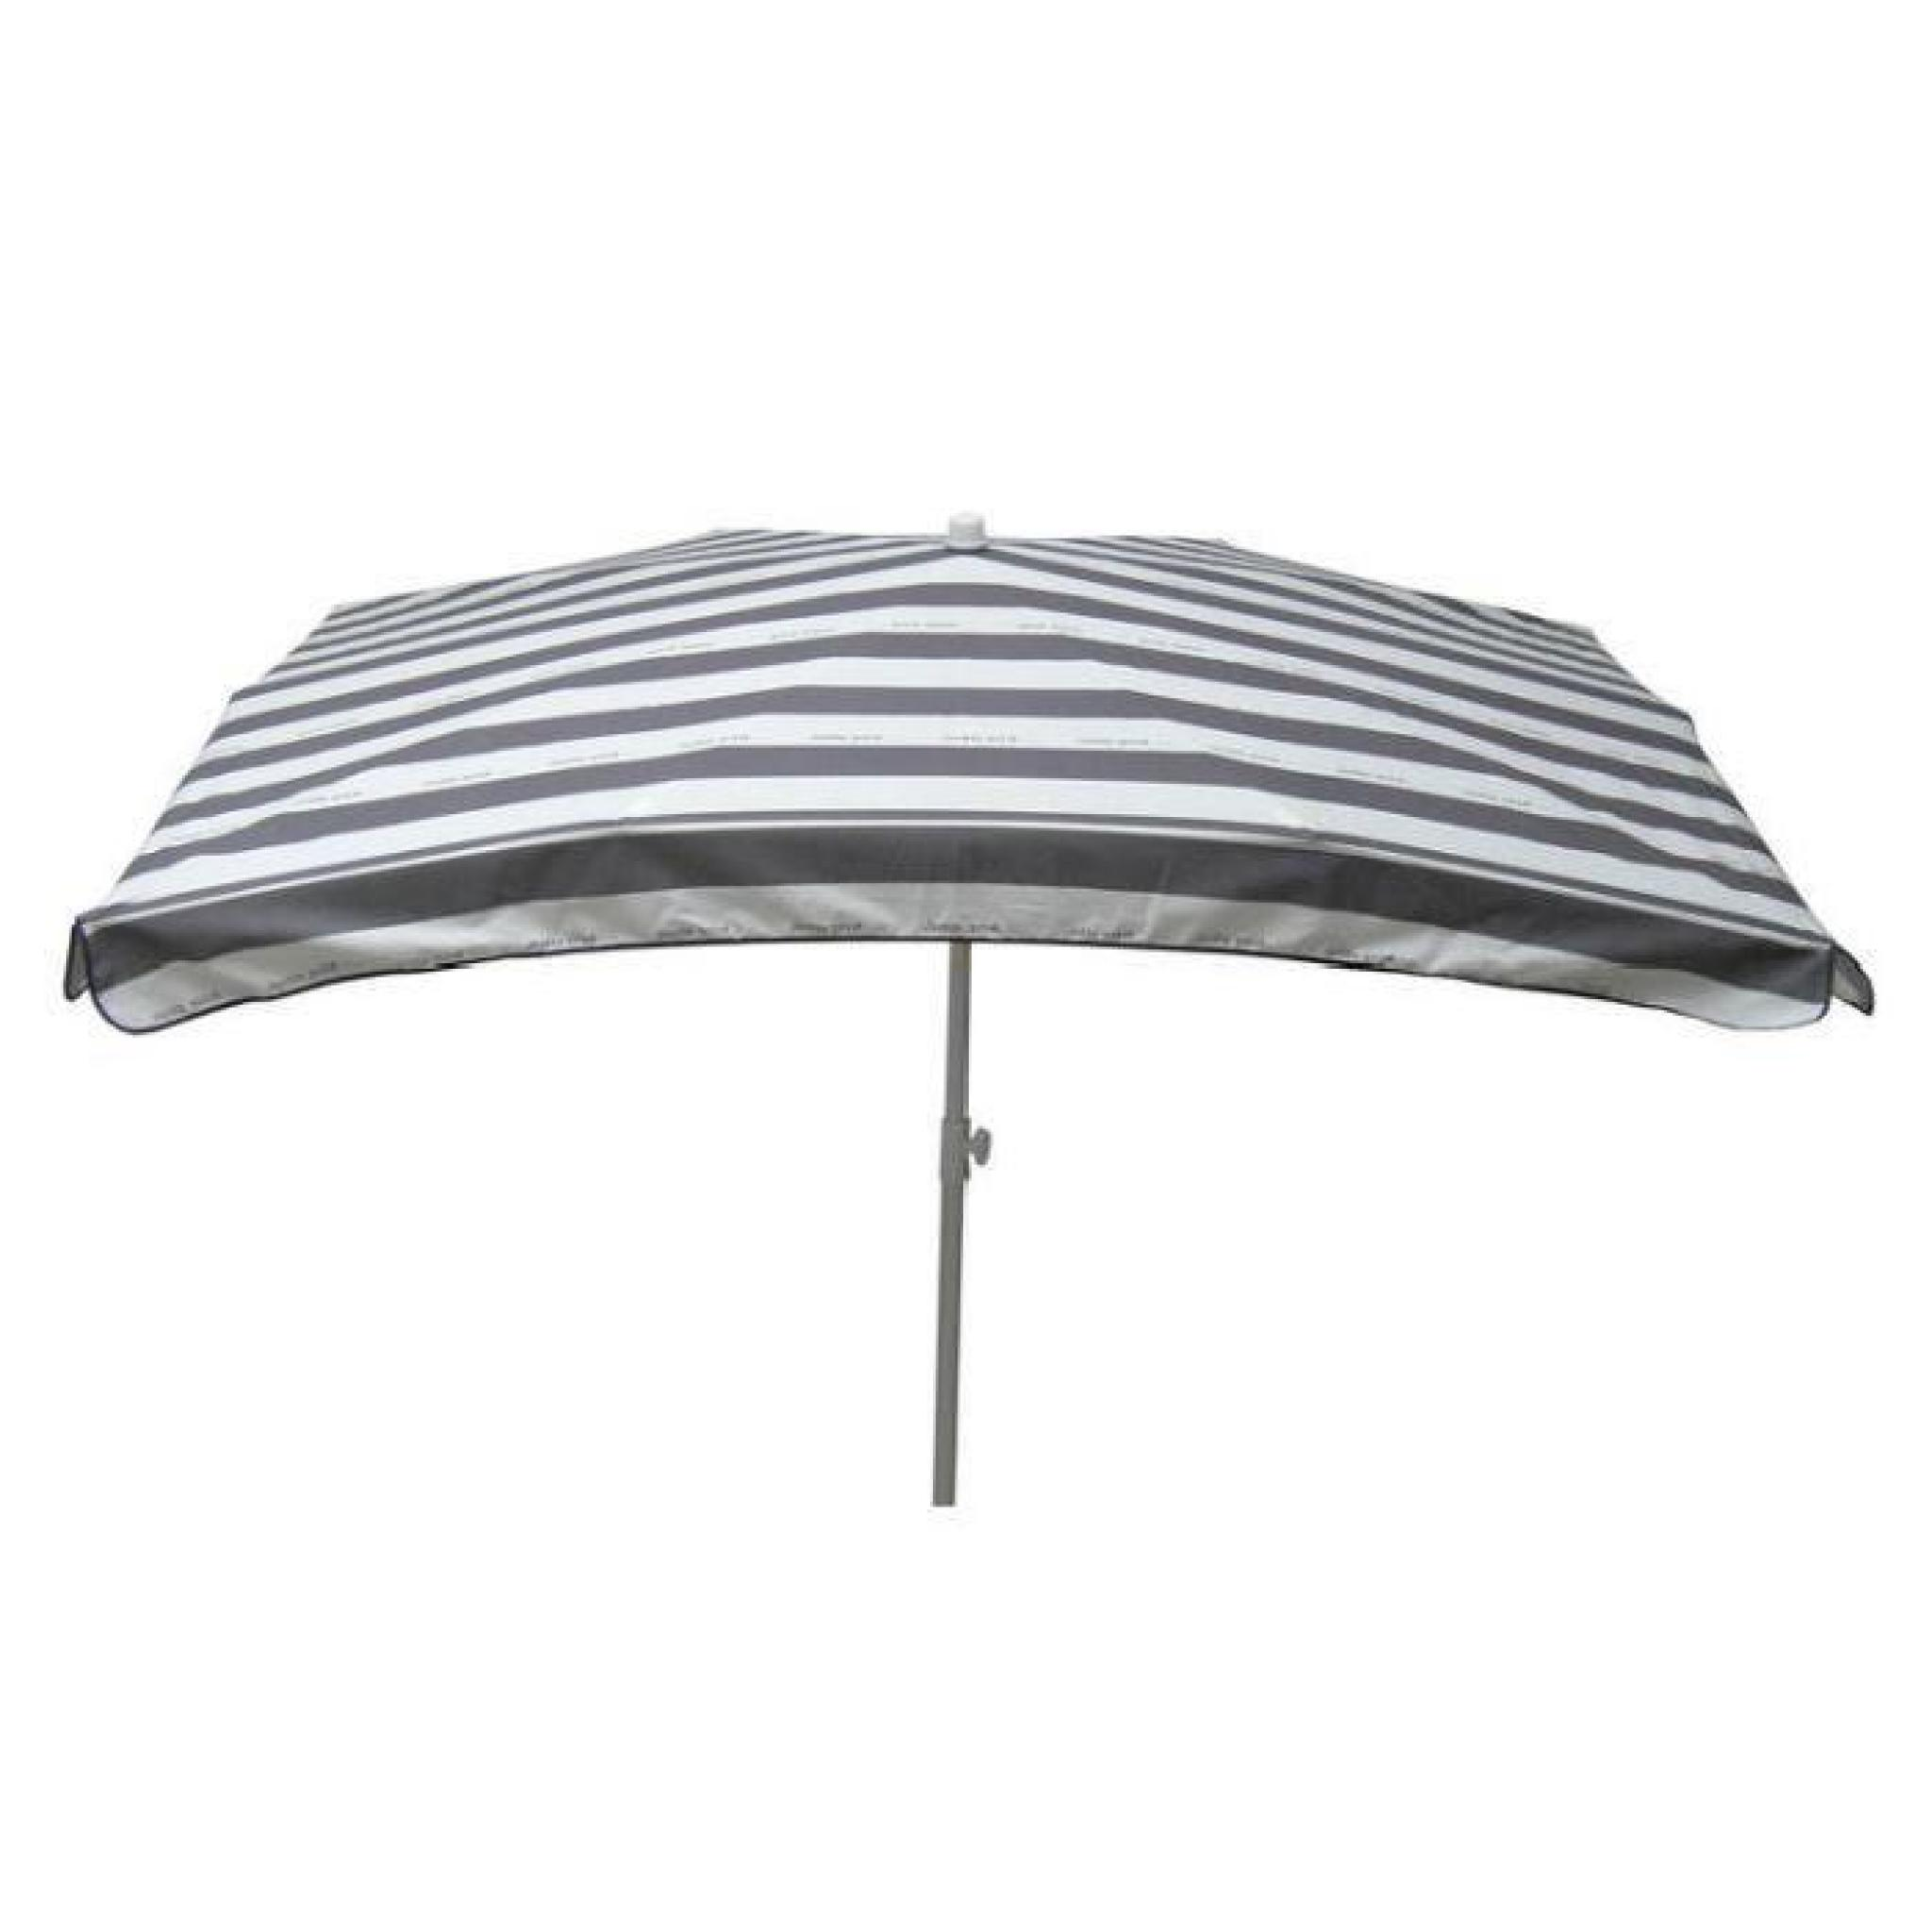 parasol-droit-rectangle-200-x-140-cm-raye-cancale-1 Meilleur De De Parasol Inclinable Pas Cher